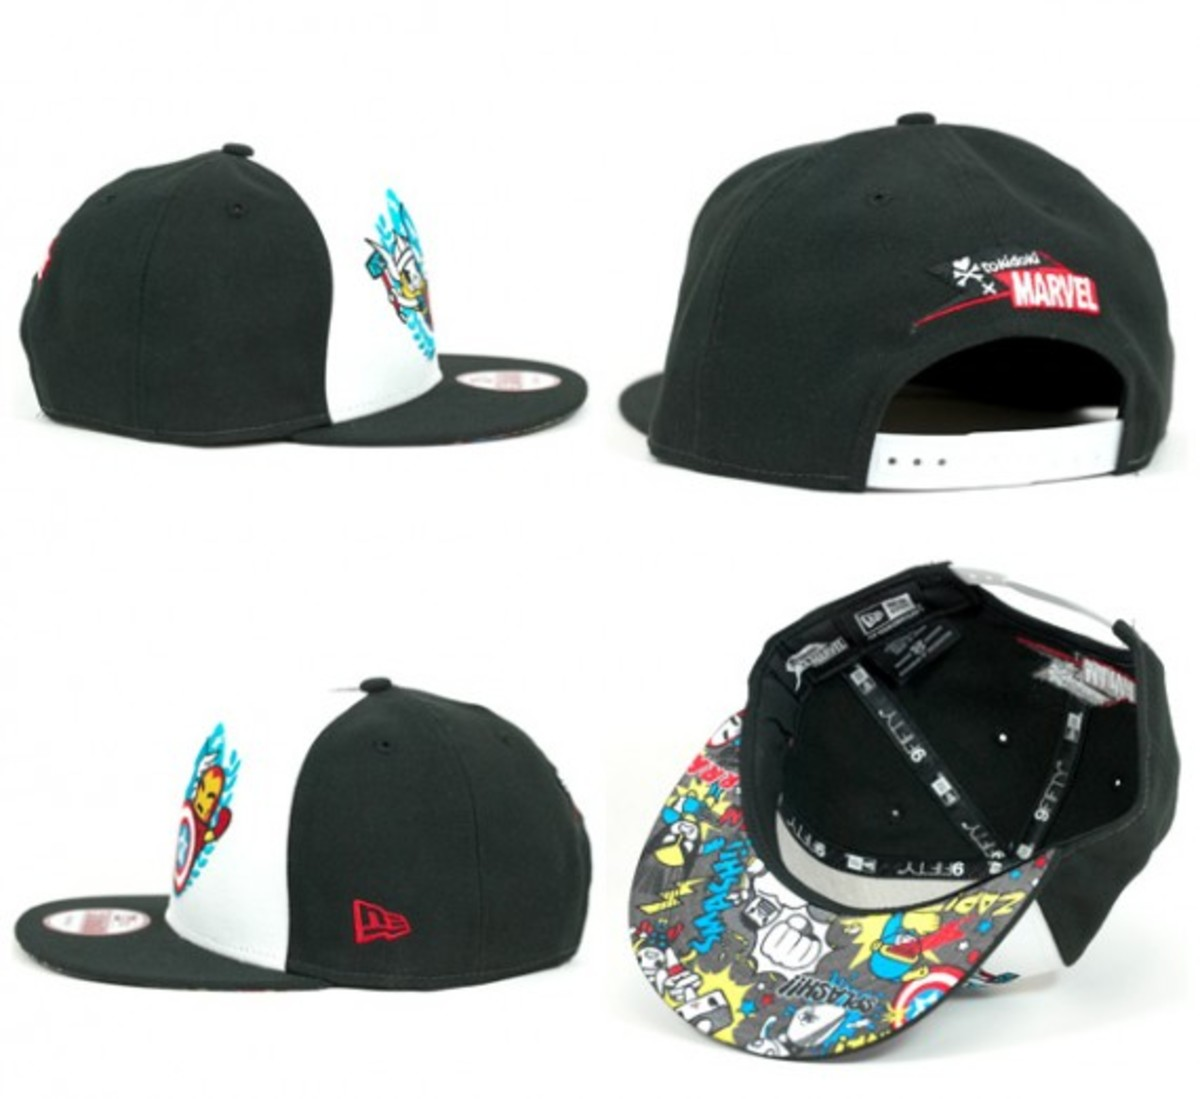 tokidoki-marvel-new-era-9fifty-snapback-caps-collection-09